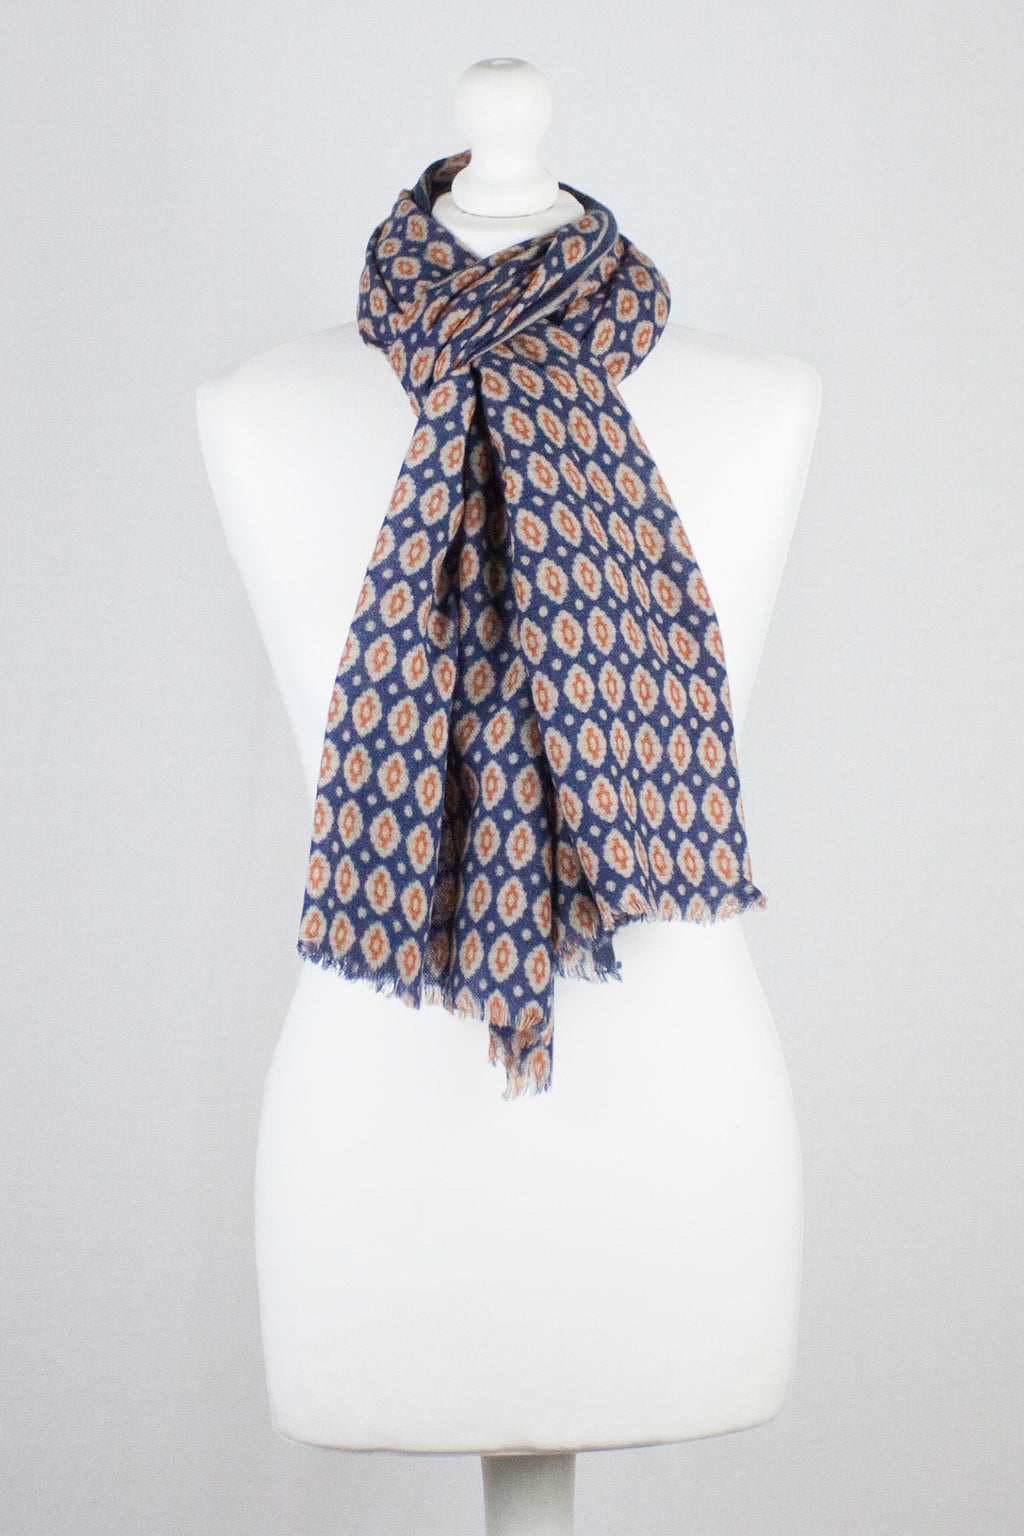 Diamond Tile Print Merino Wool Scarf - Navy Orange